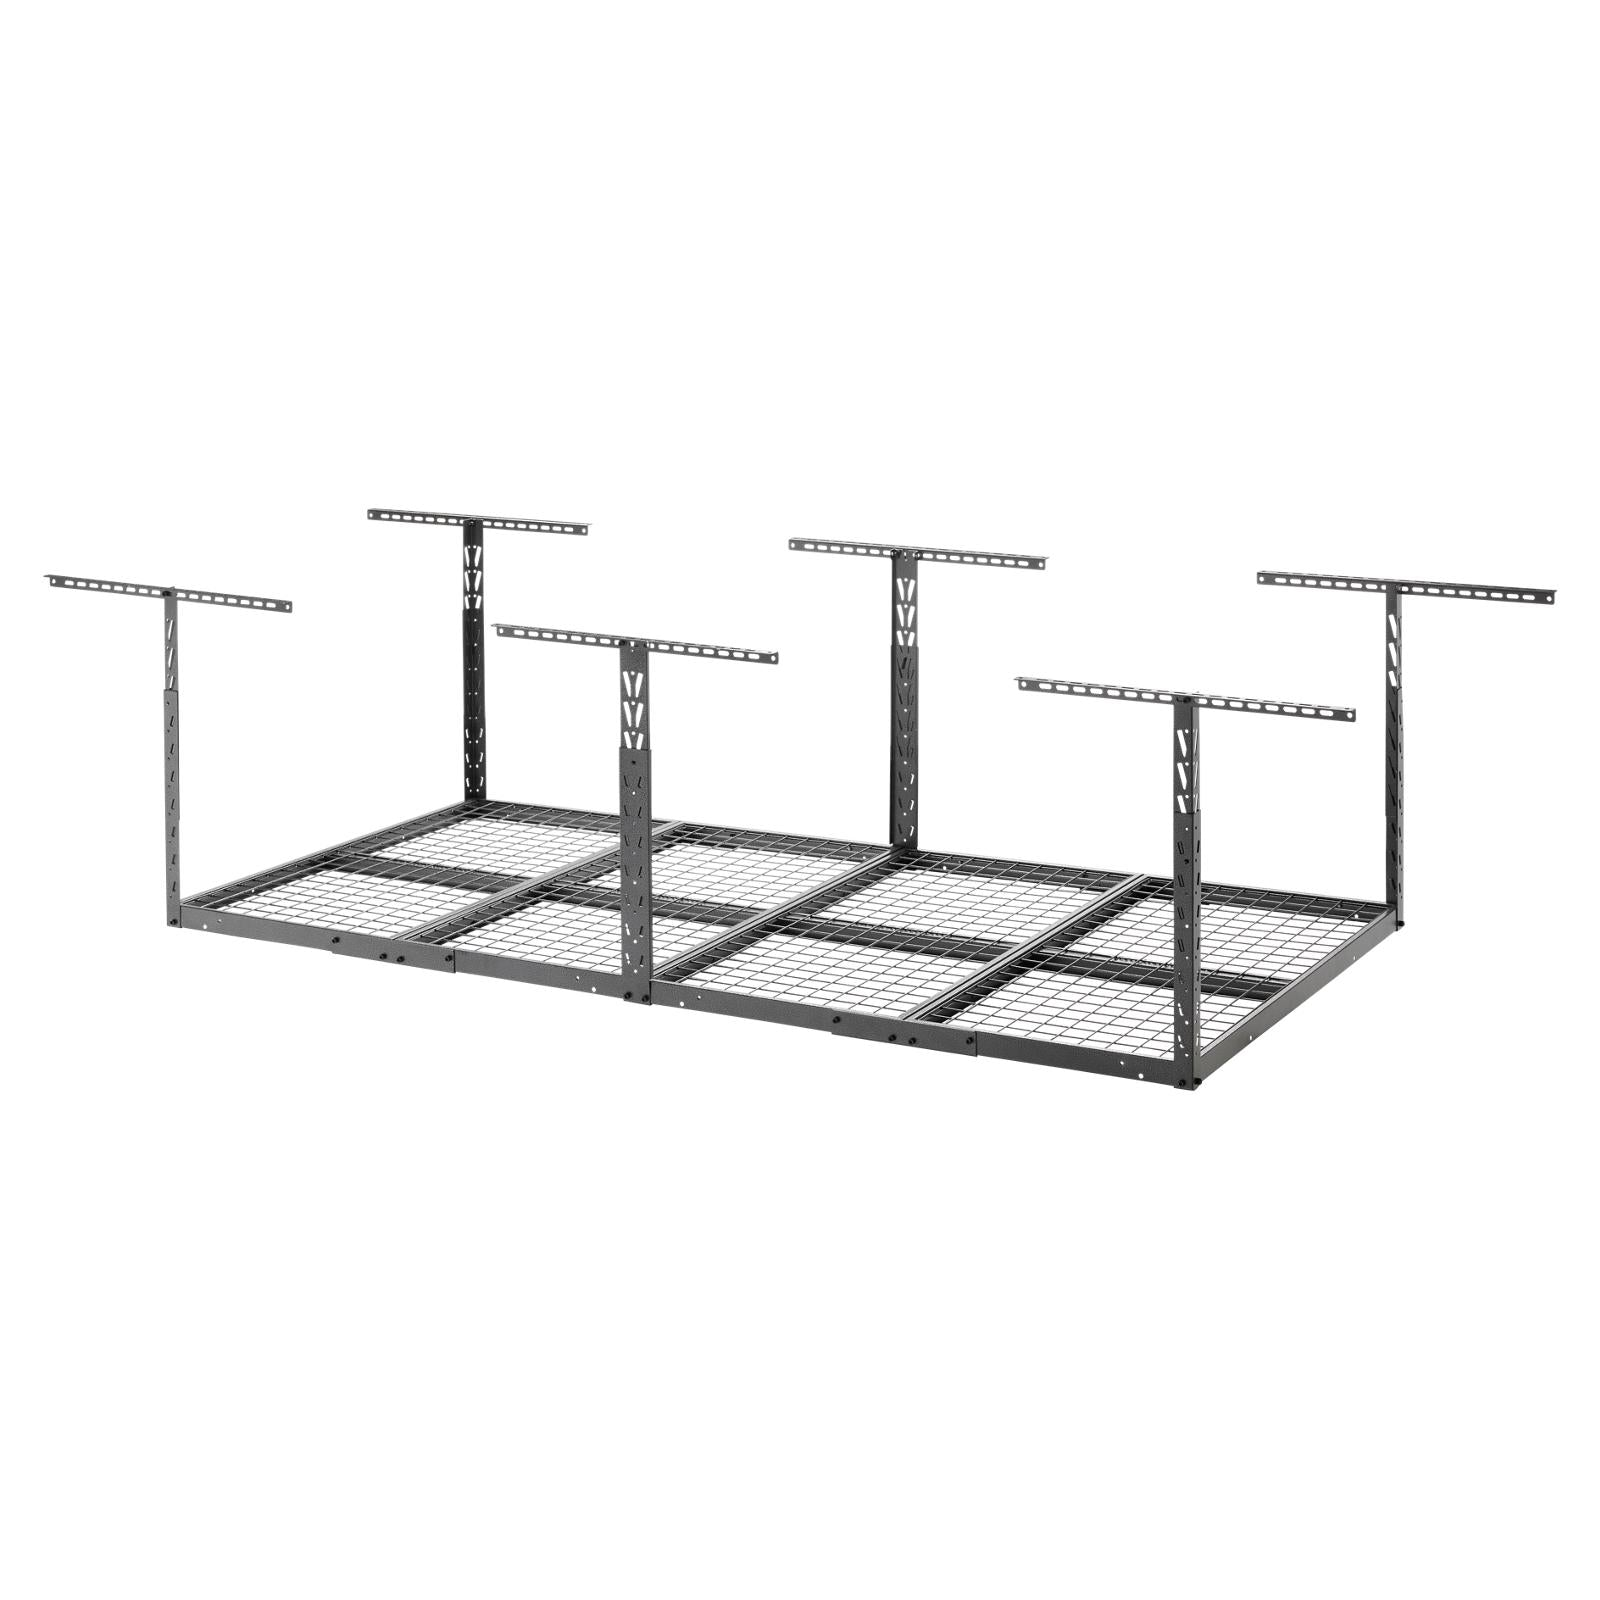 Overhead GearLoft™ Storage Rack 4 x 8